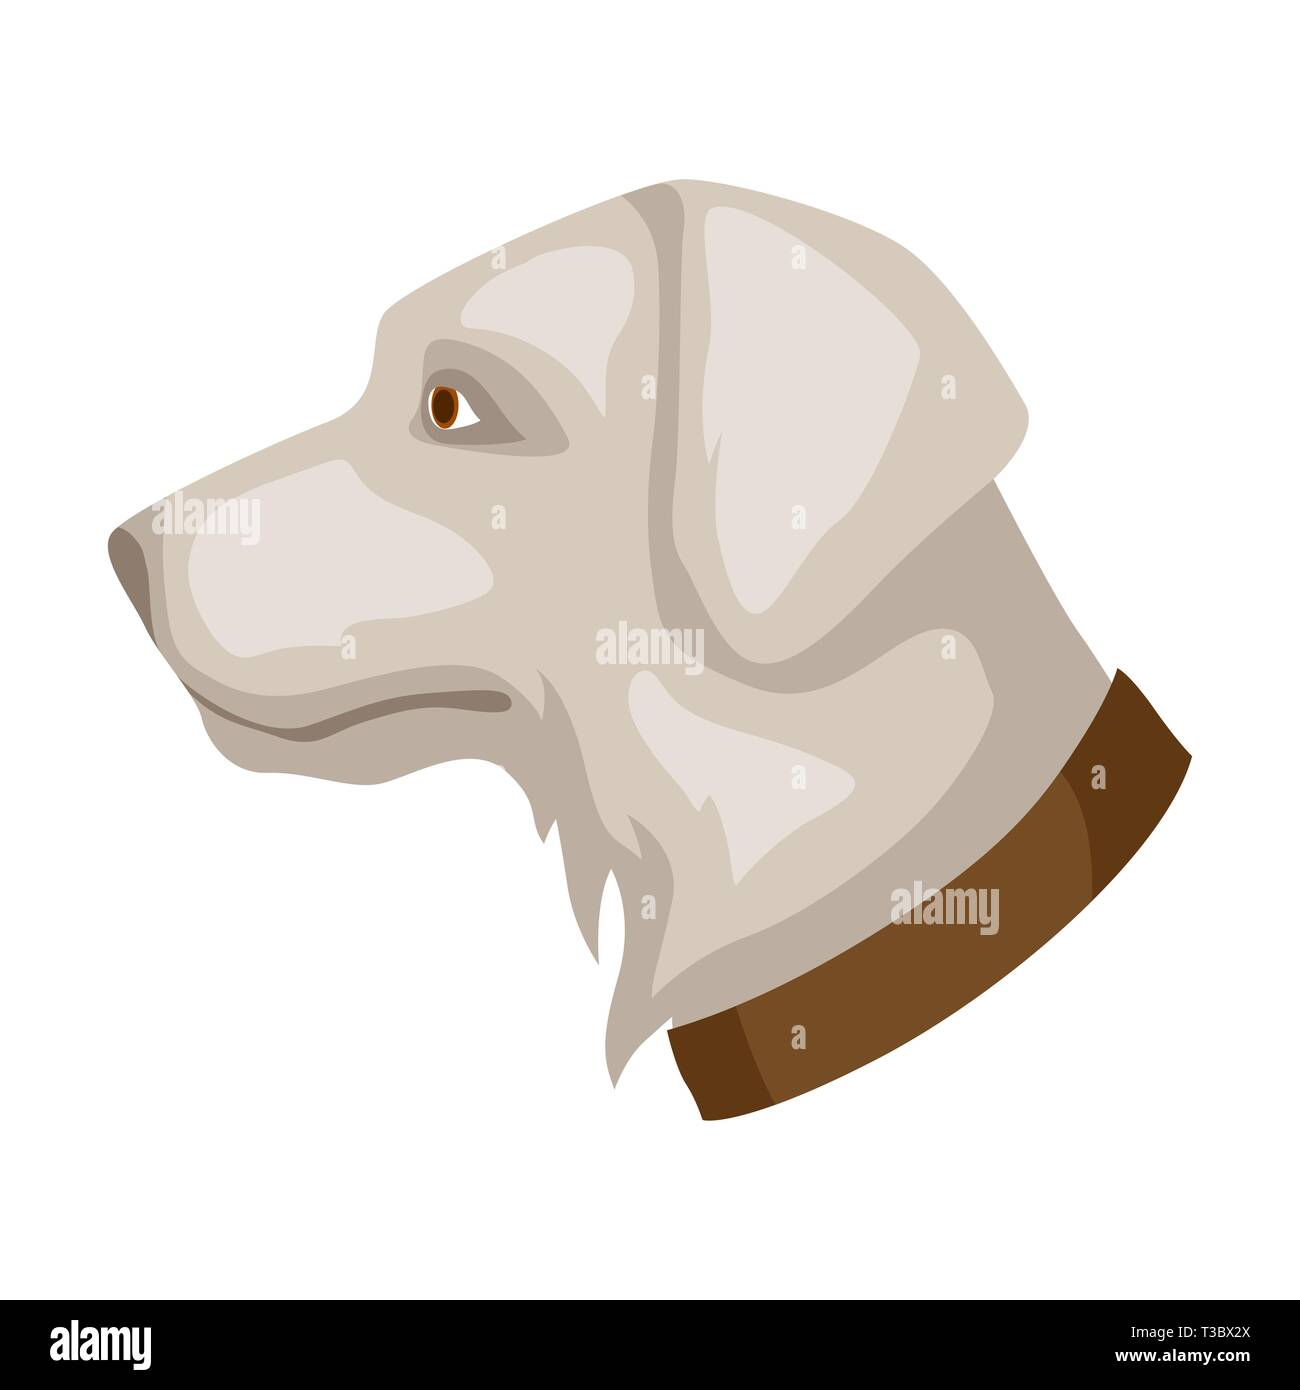 Icon of dog head. Illustration solated on white background. - Stock Image